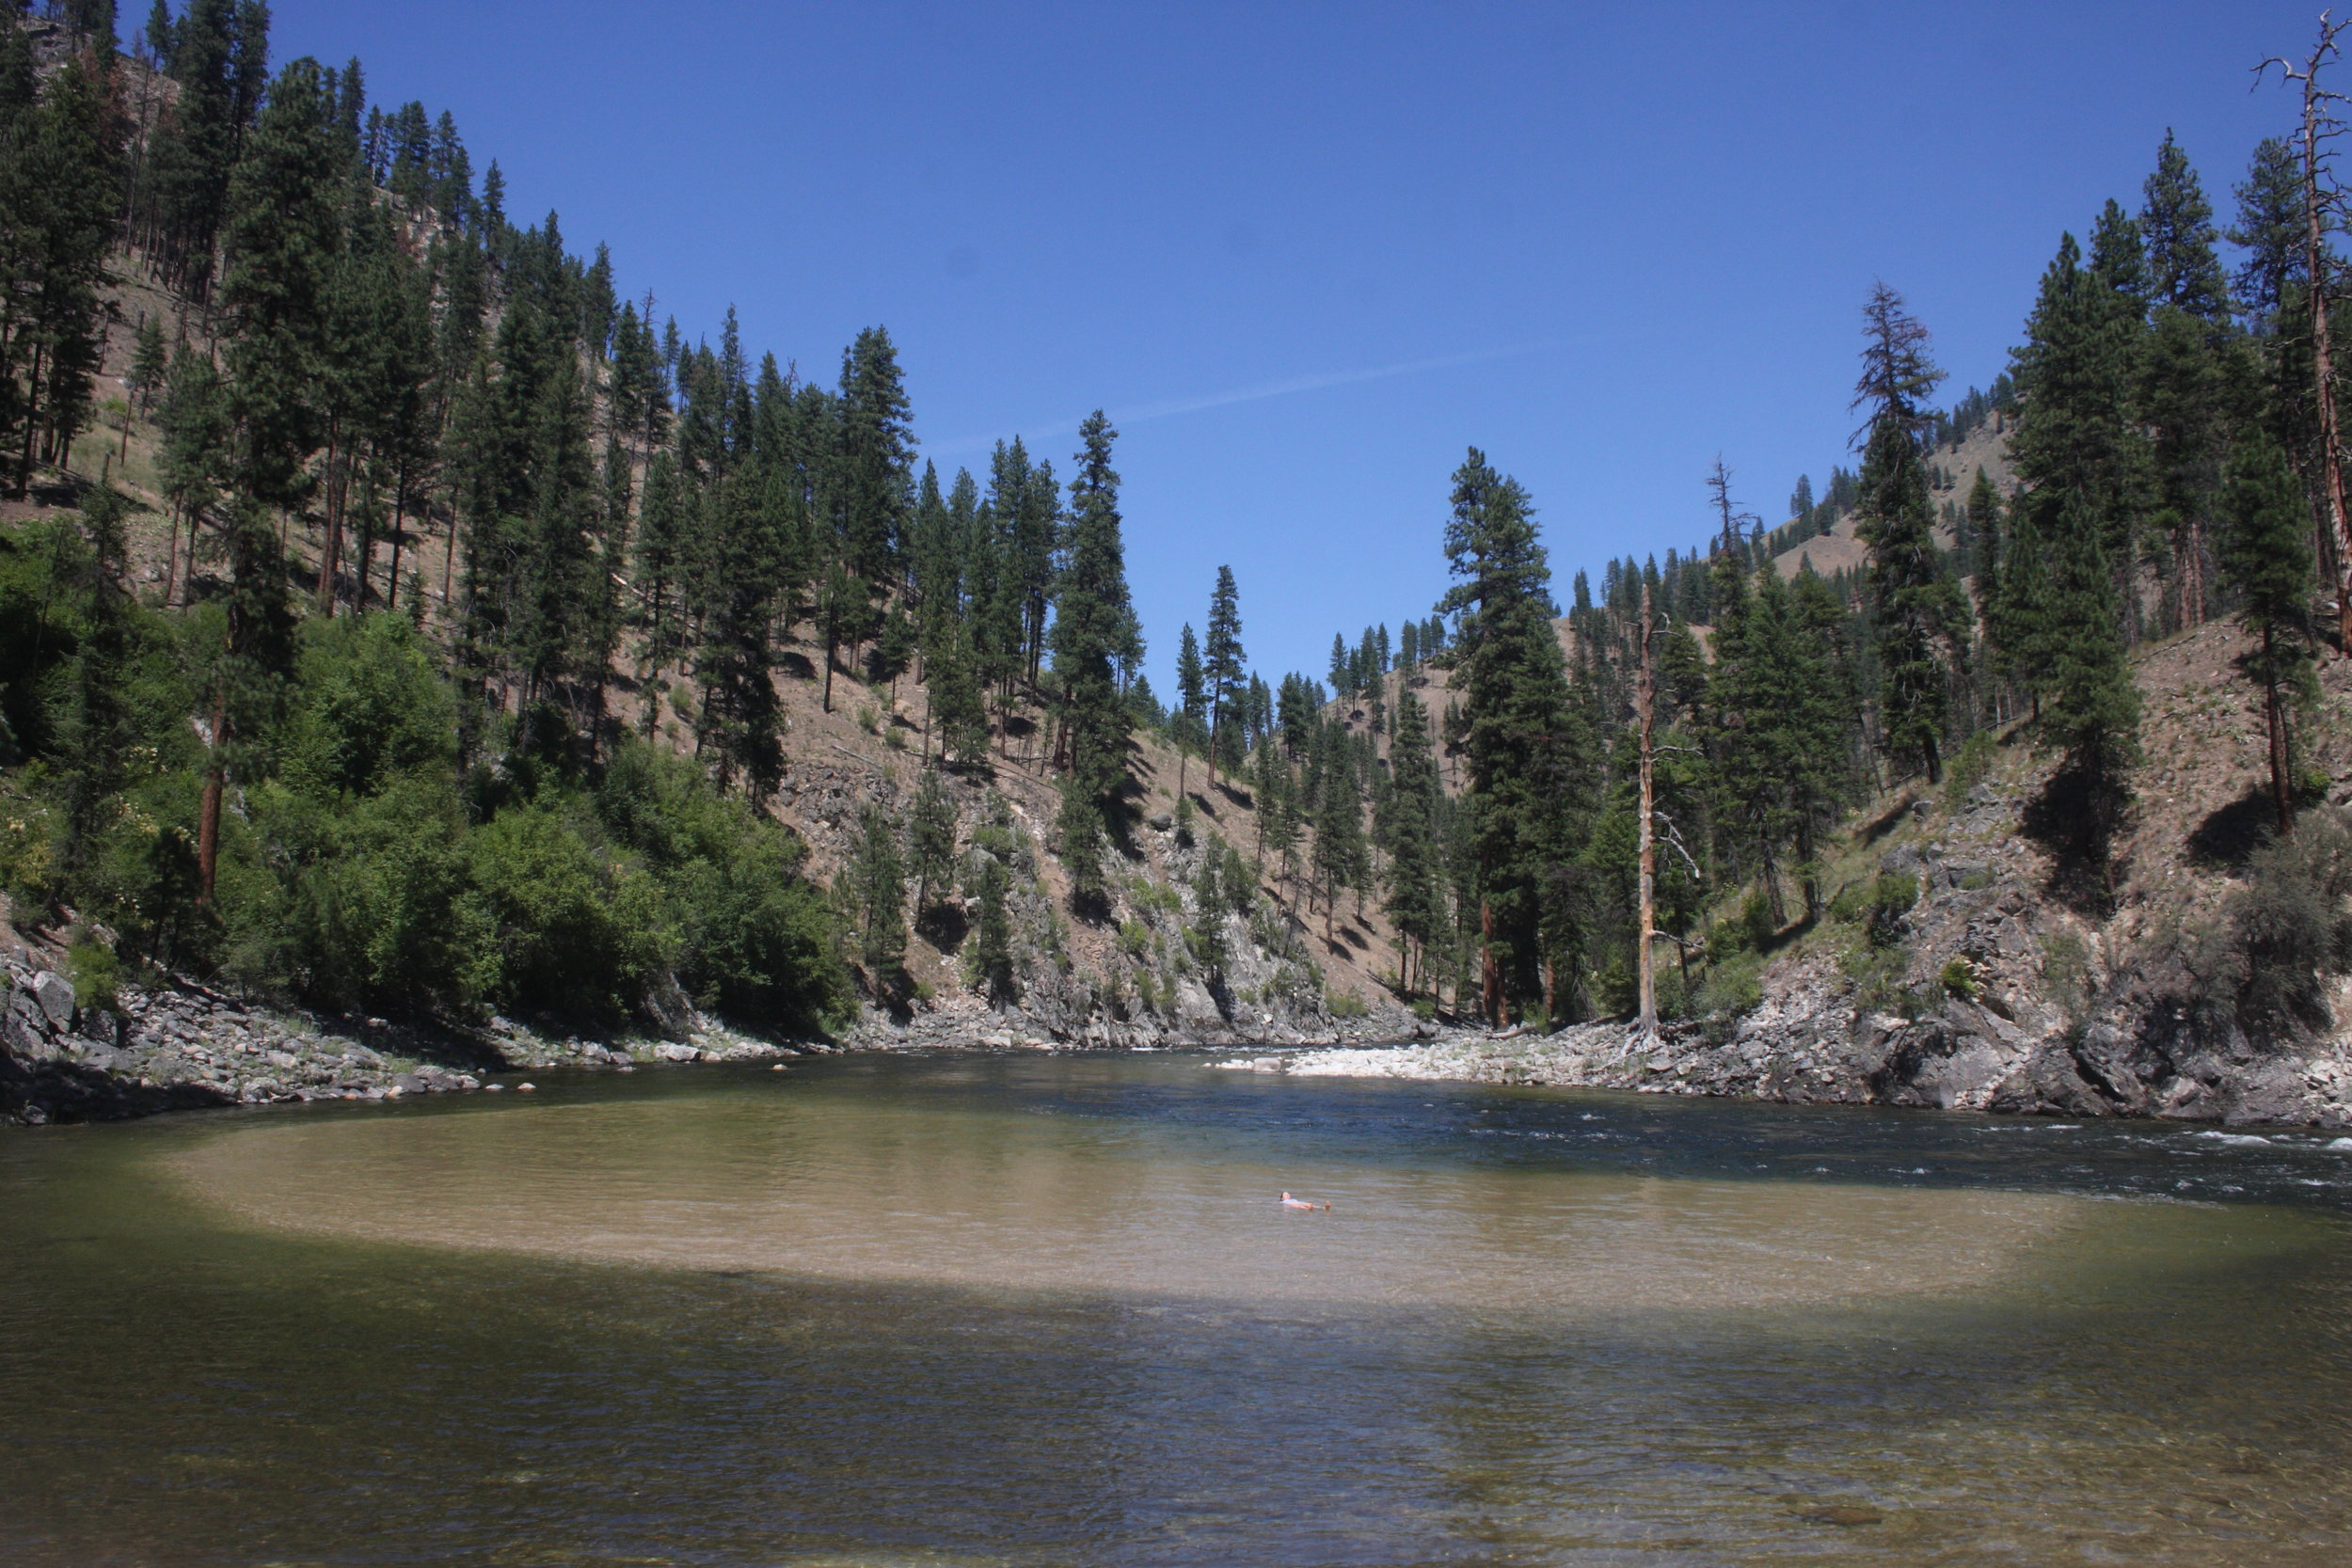 Idyllic South Fork of the Salmon River